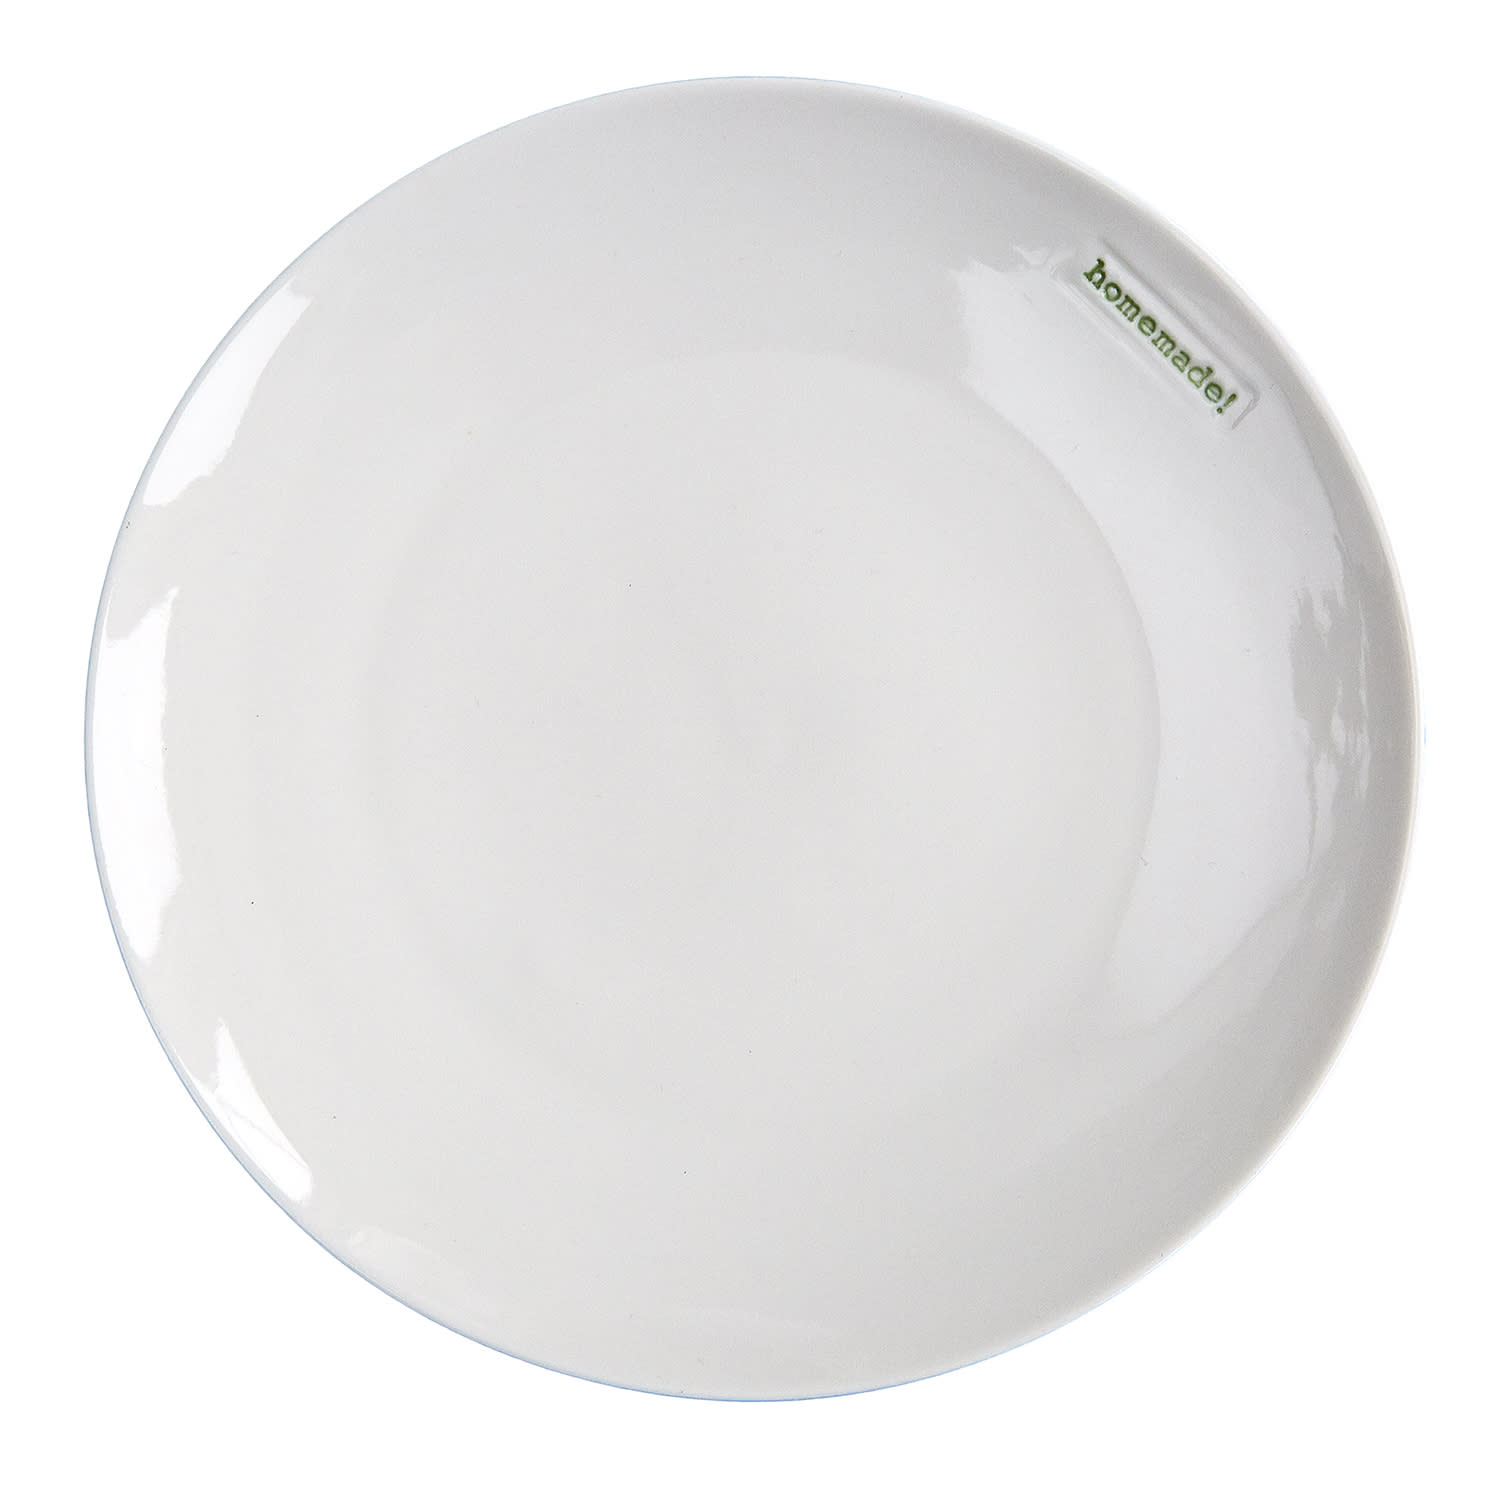 Make International Side Plate With 'Homemade' Designed By Keith Brymer Jones